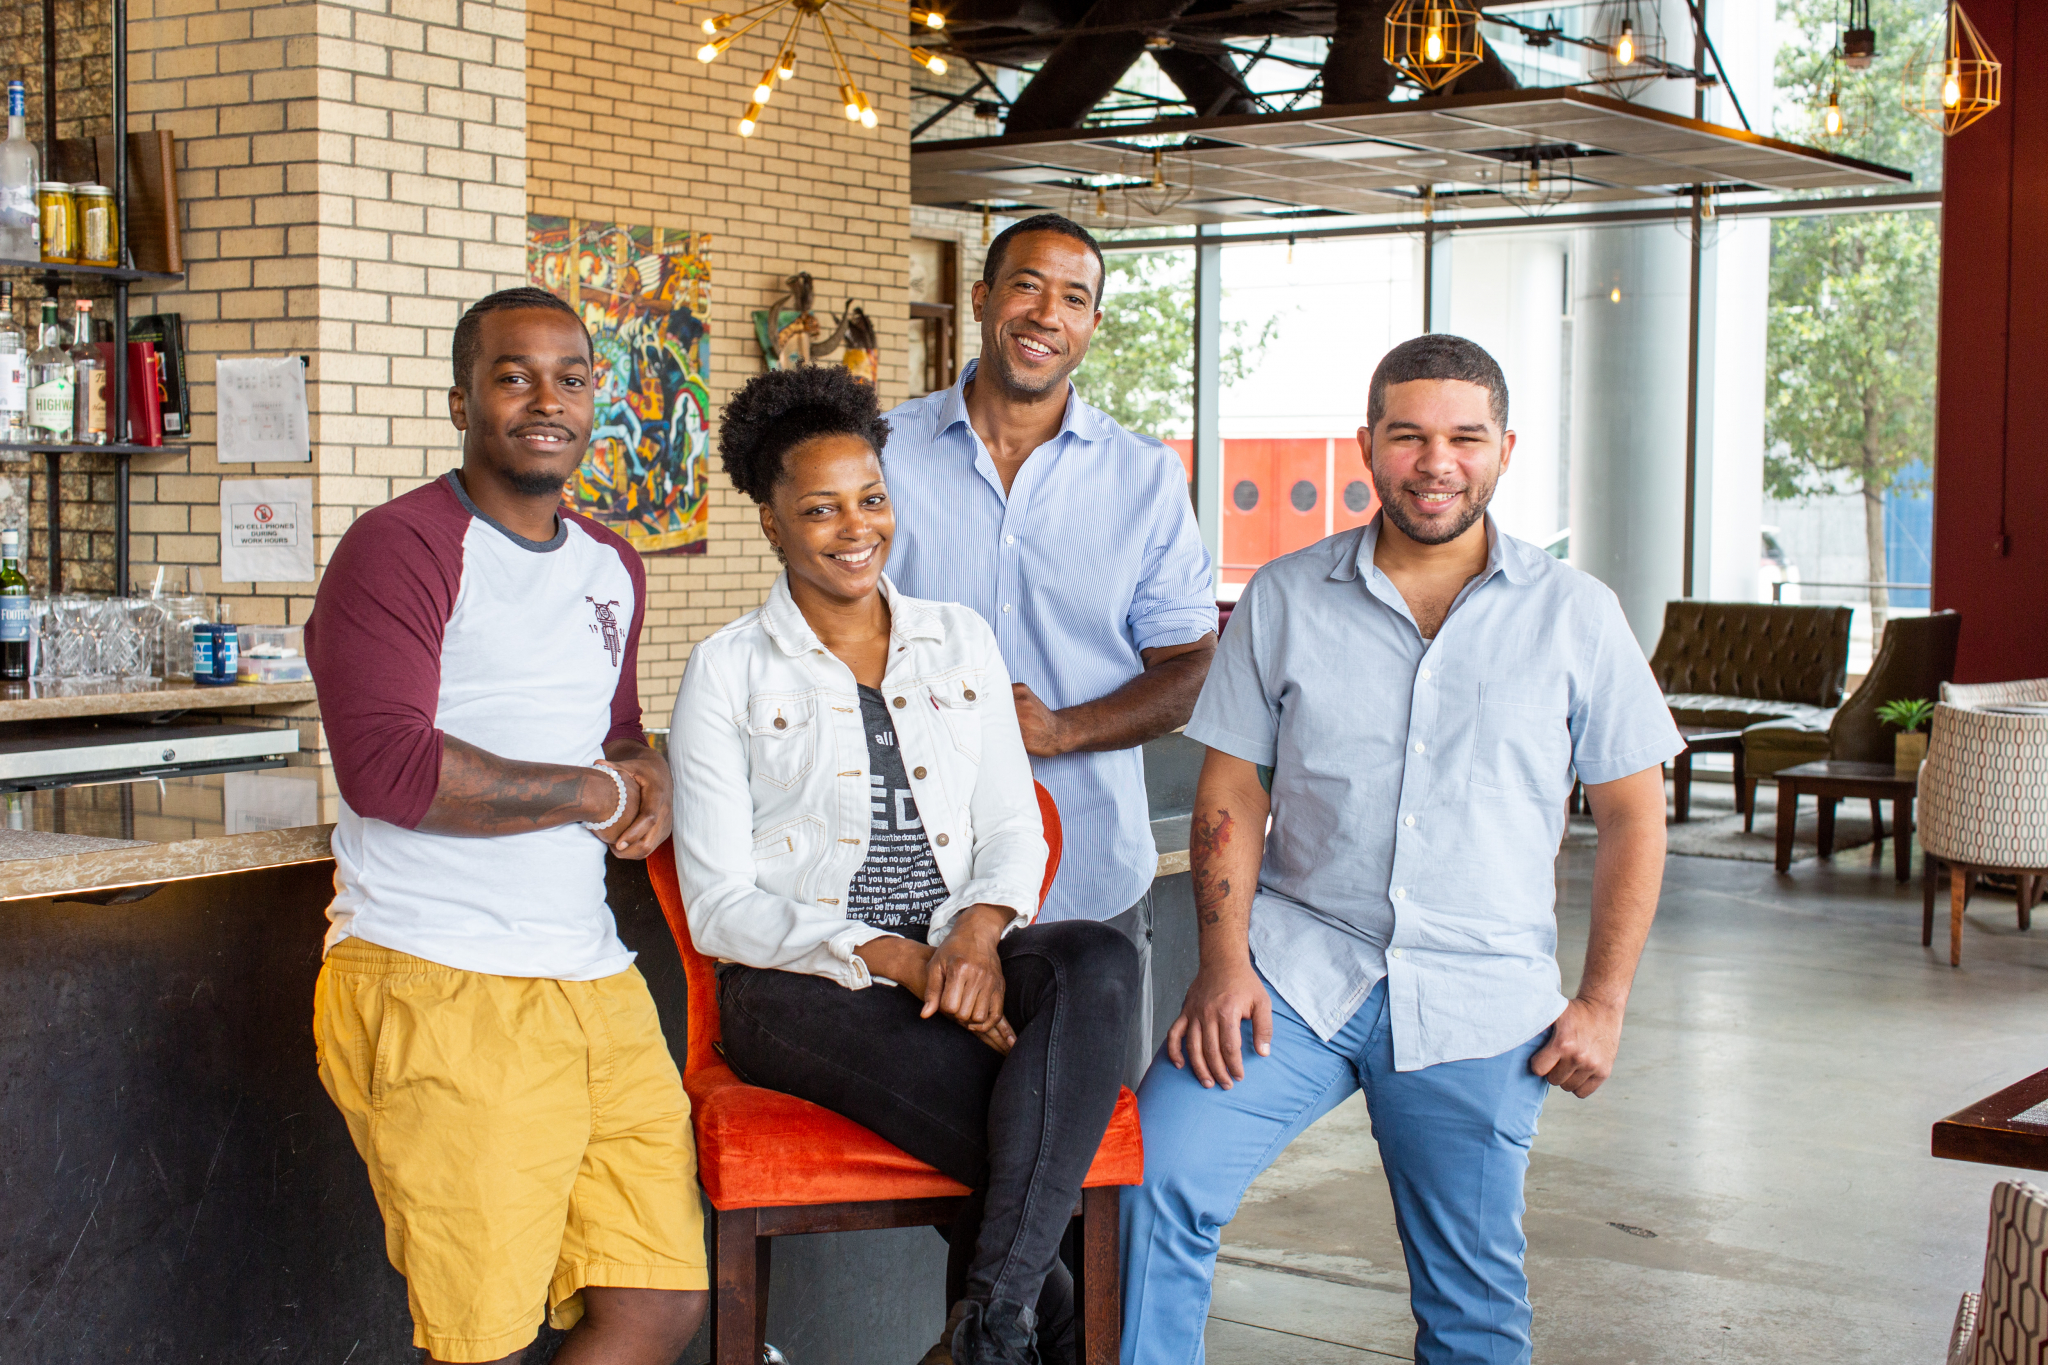 Chefs team up to raise awareness of Houston's food deserts